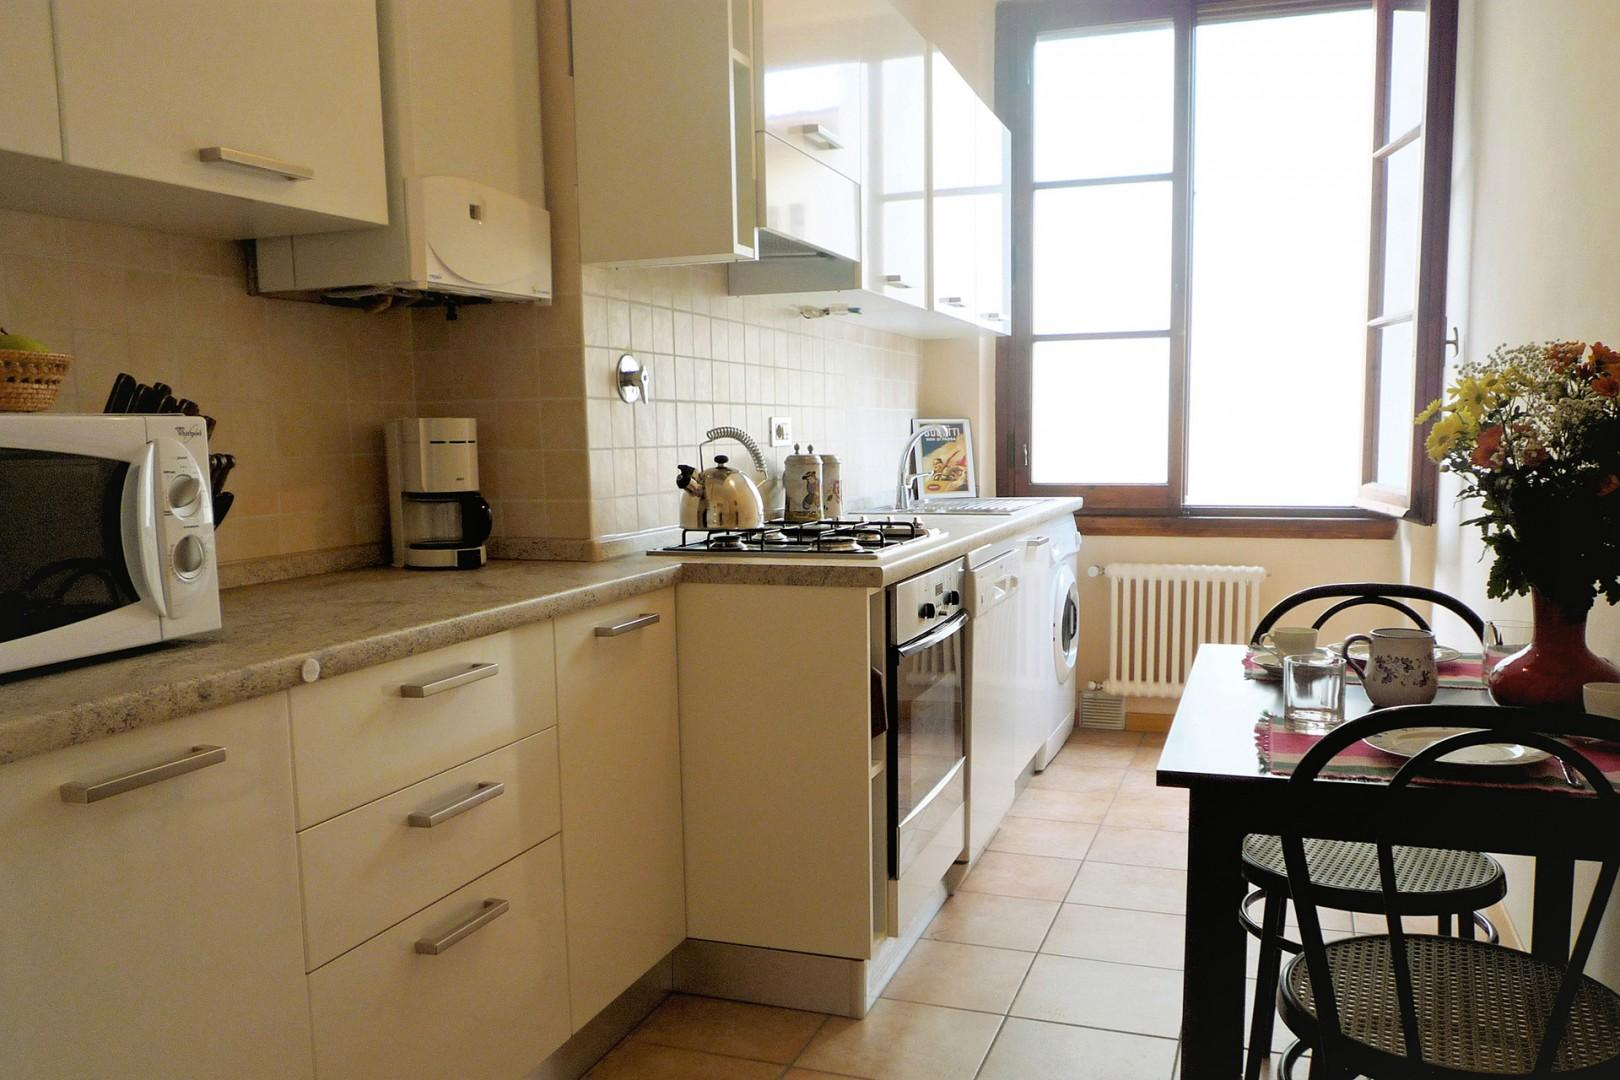 Kitchen is a cook's delight with all modern amenities, light, and a table for casual meals.